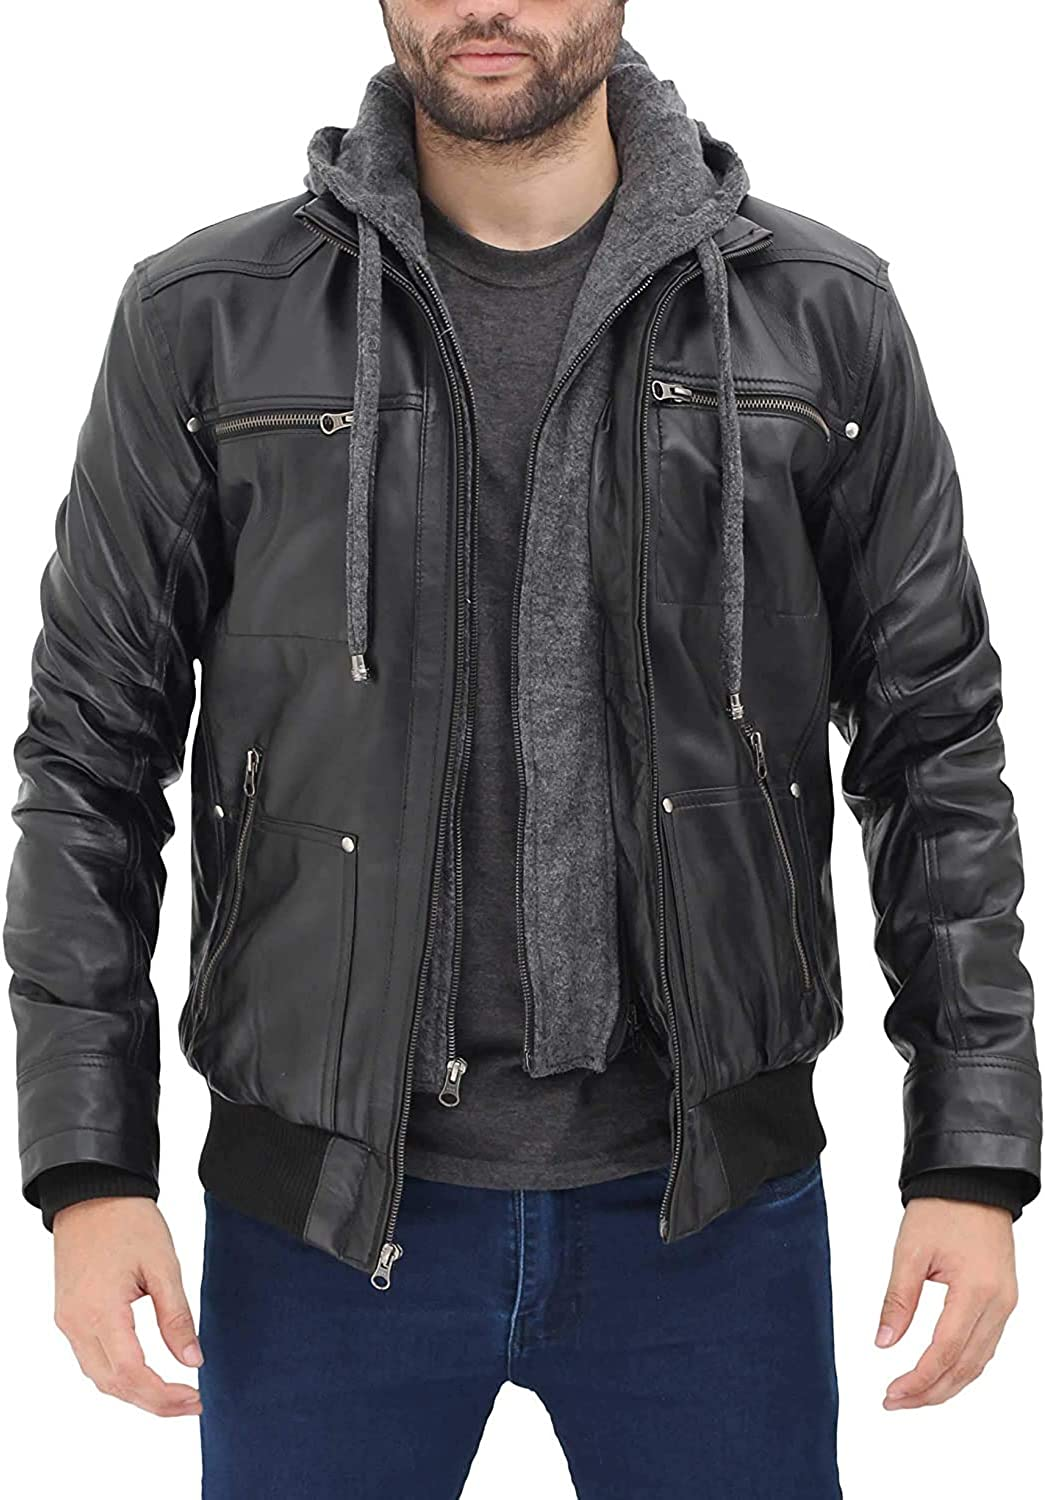 Hooded Leather Jackets for Men - Removeable Mens Black Bomber Hoodie Jacket